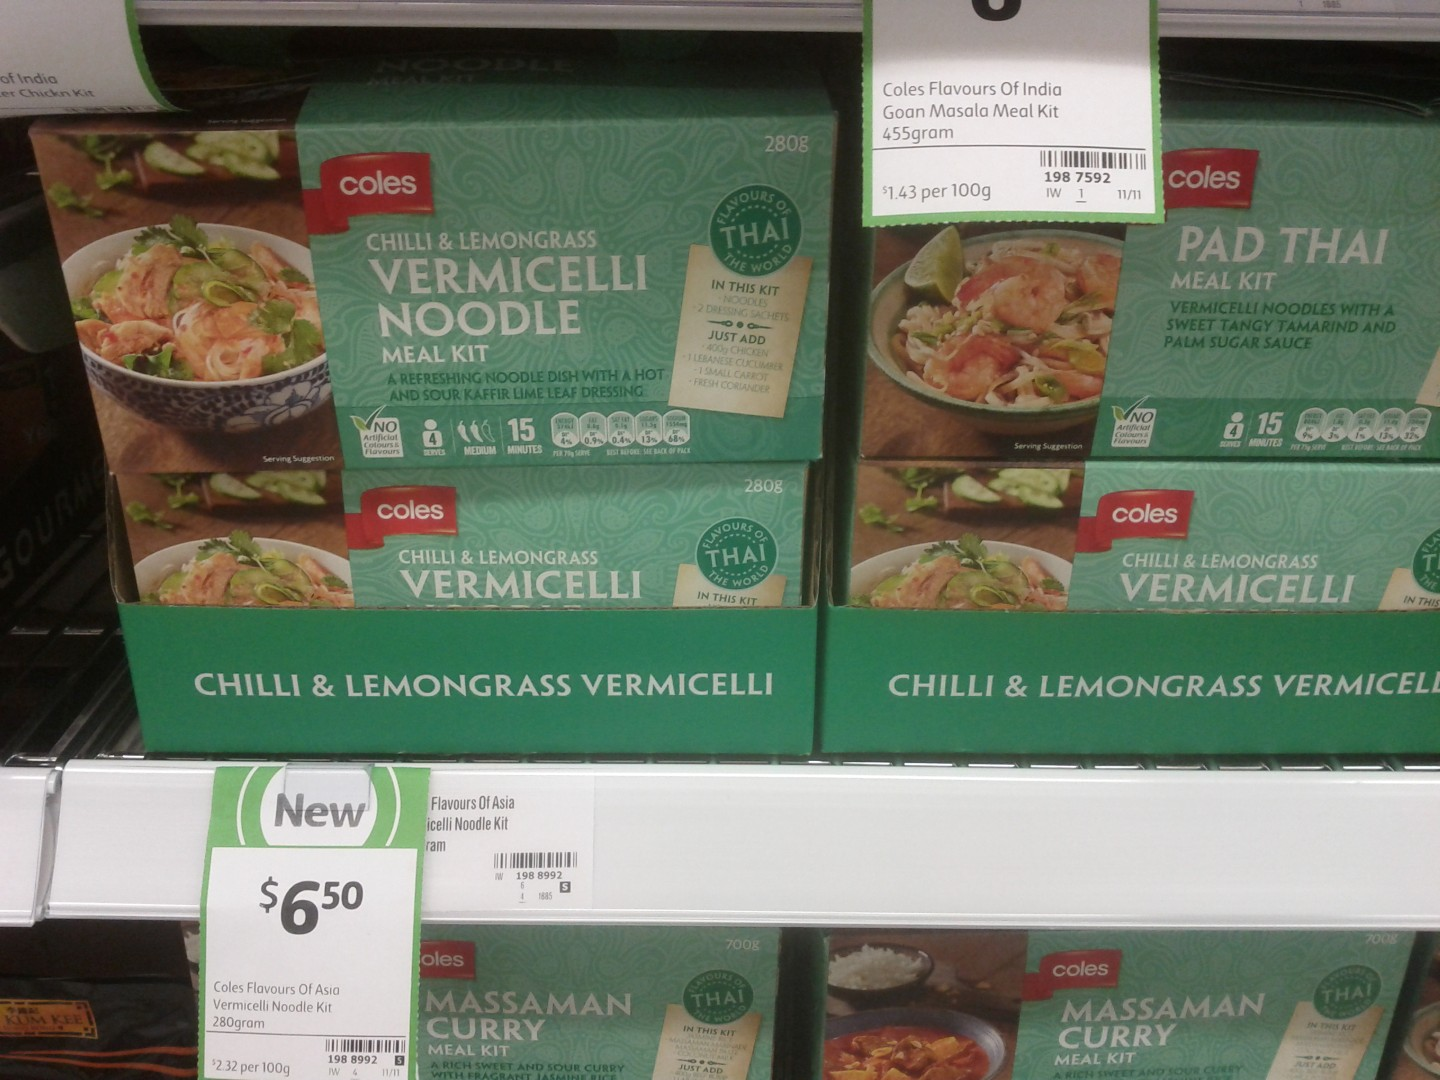 Coles 280g Vermicelli Noodle Meal Kit